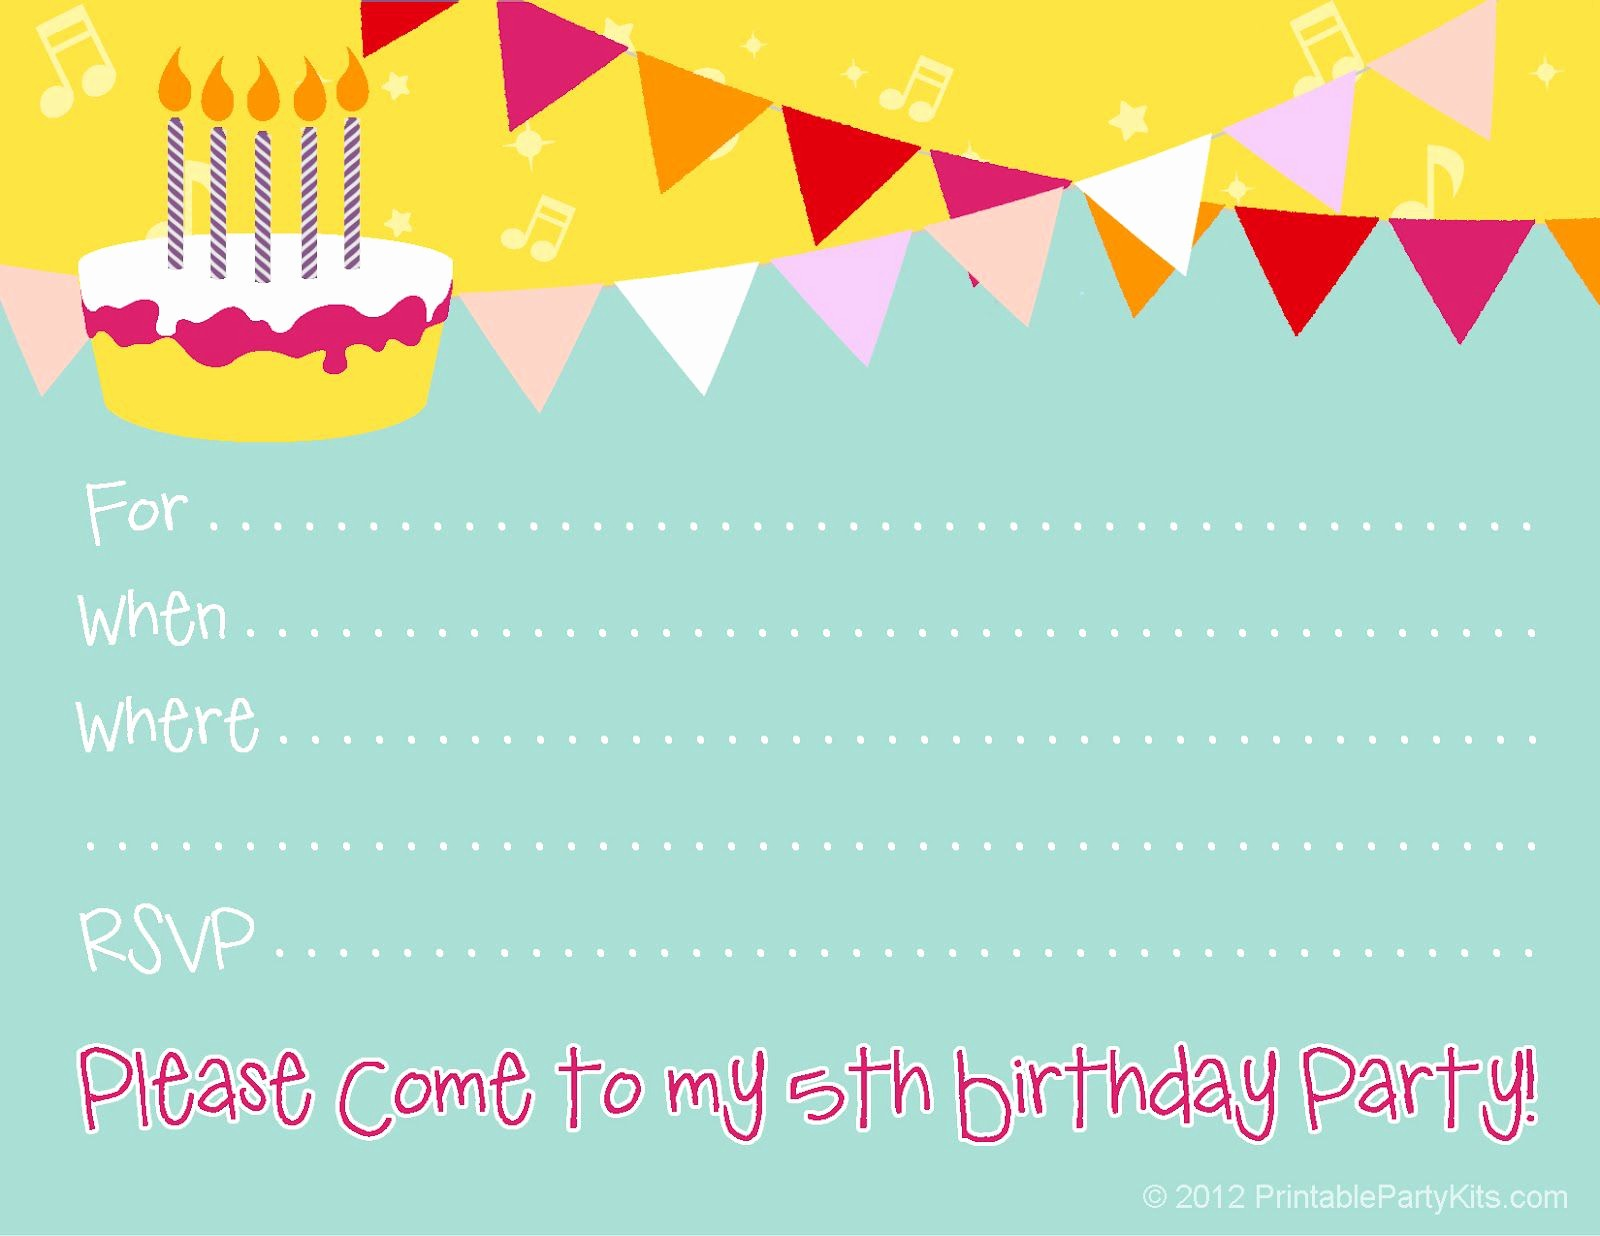 Birthday Party Invitation Card Template Inspirational Birthday Invitations Kids Birthday Invite Template